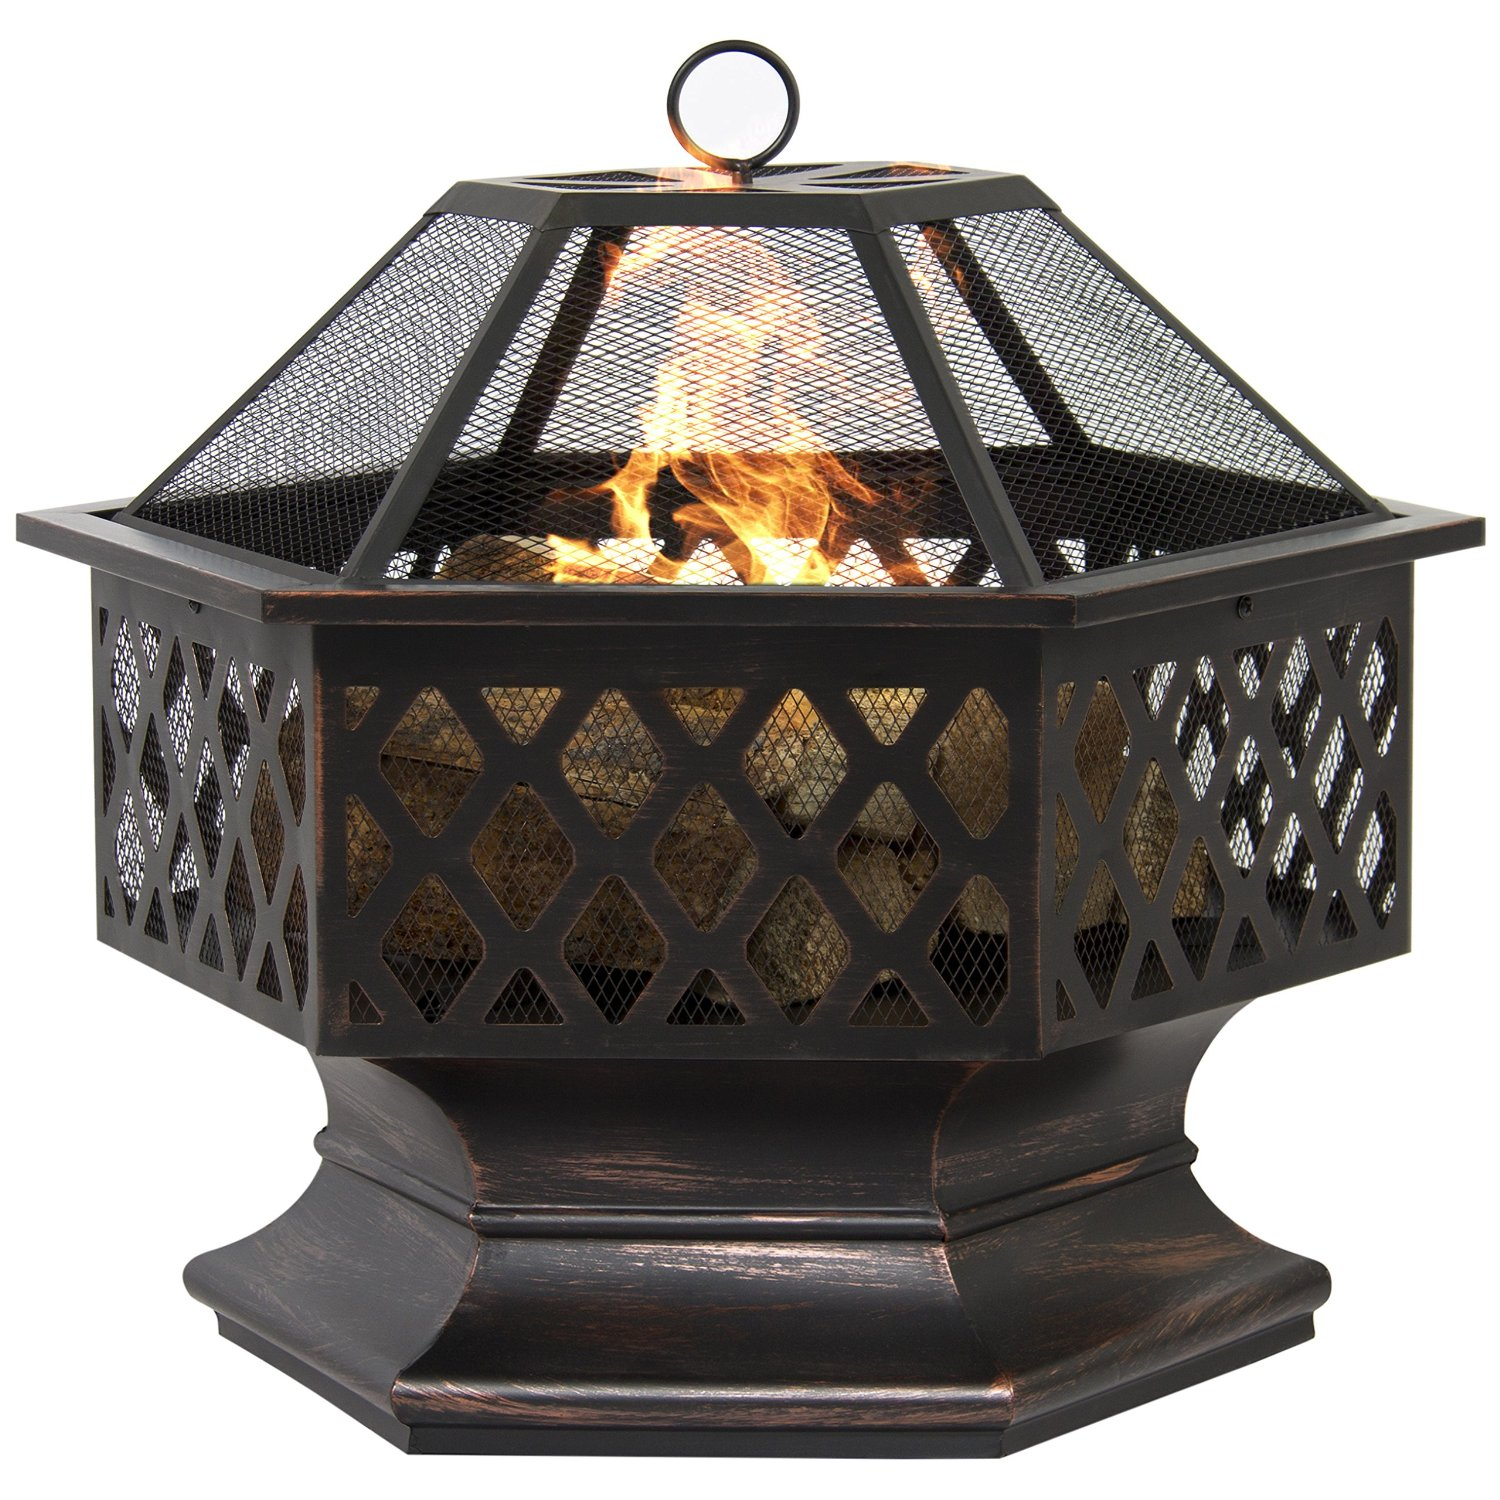 Hex Shaped Fire Pit Outdoor Home Garden Backyard Firepit Bowl